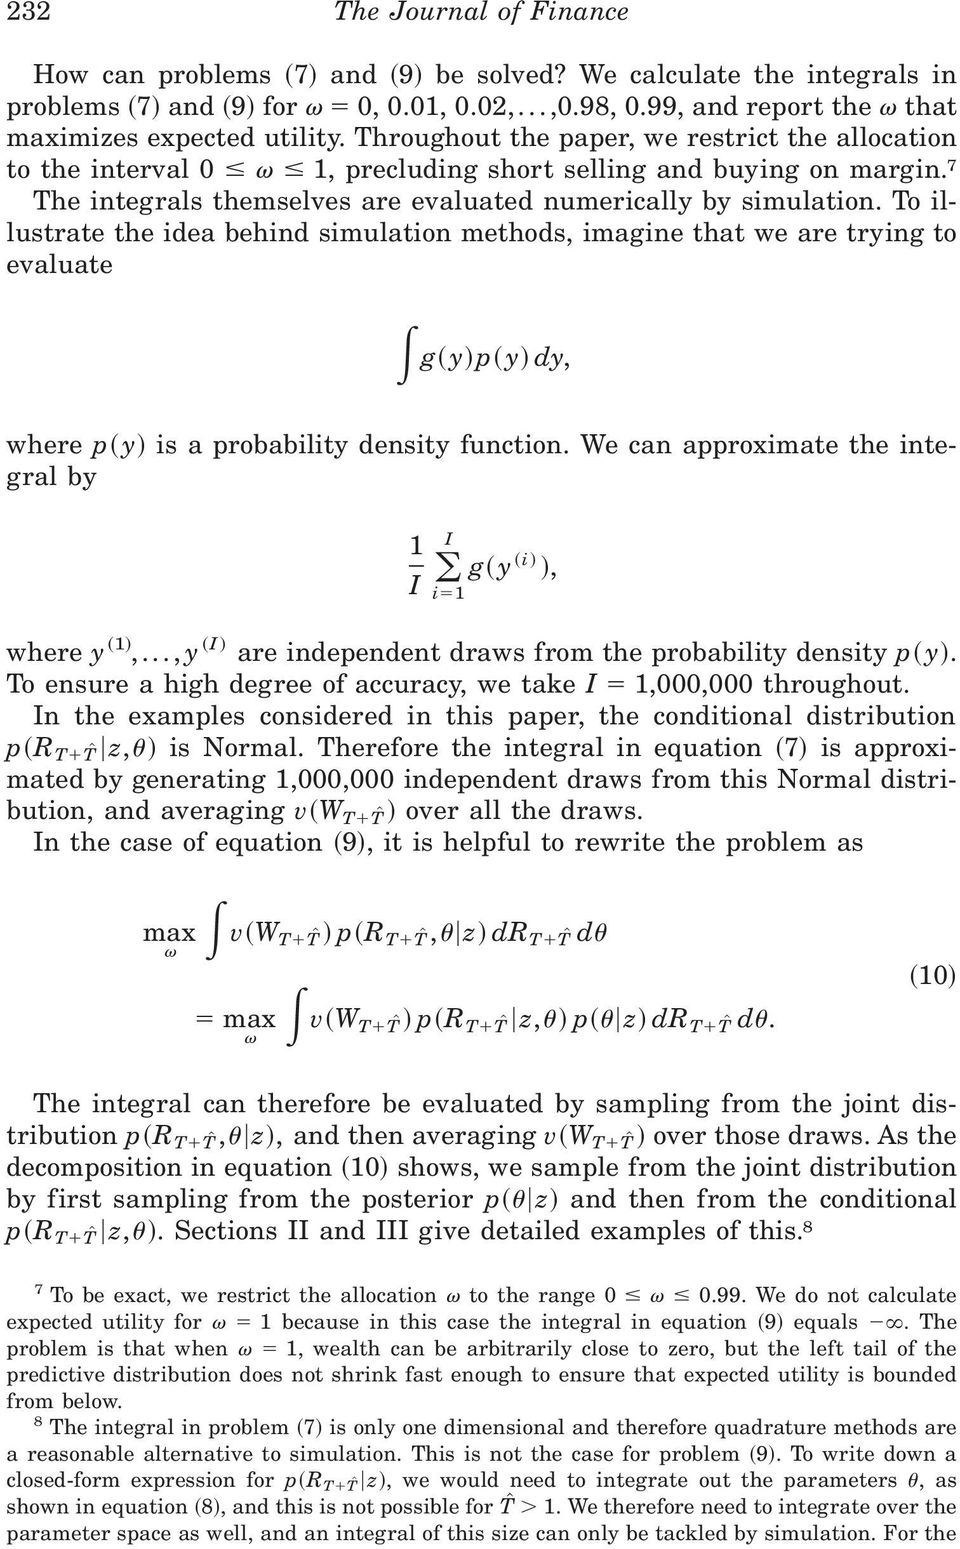 7 The integrals themselves are evaluated numerically by simulation. To illustrate the idea behind simulation methods, imagine that we are trying to evaluate g~ y!p~ y! dy, where p~ y!